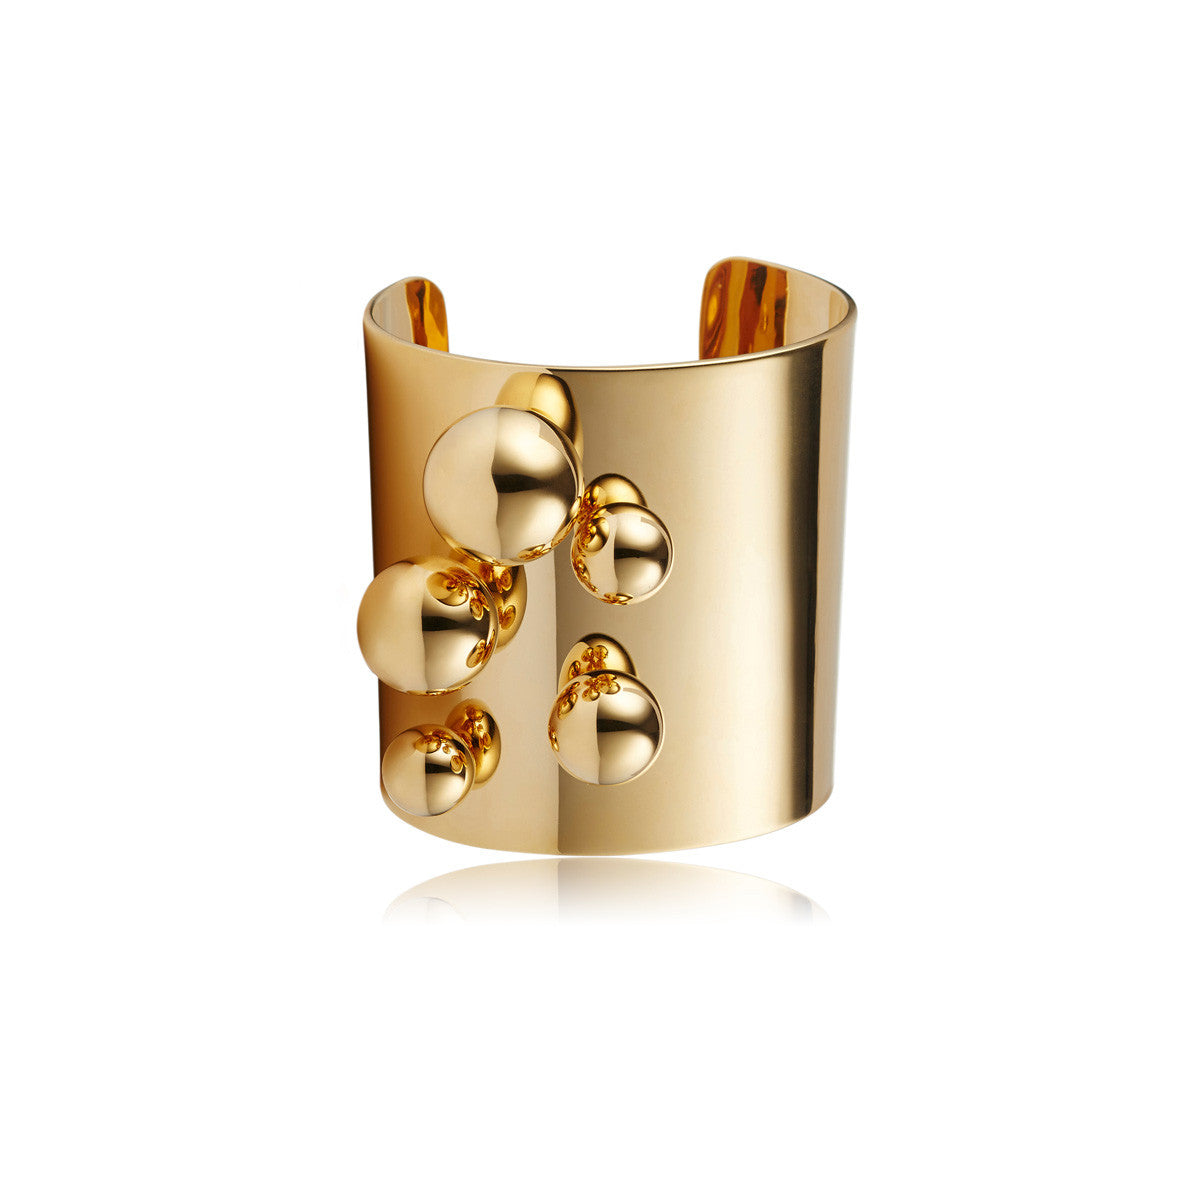 Solid brass, 18K gold plated Stellatus cuff bangle is adorned with a cluster of spheres – front